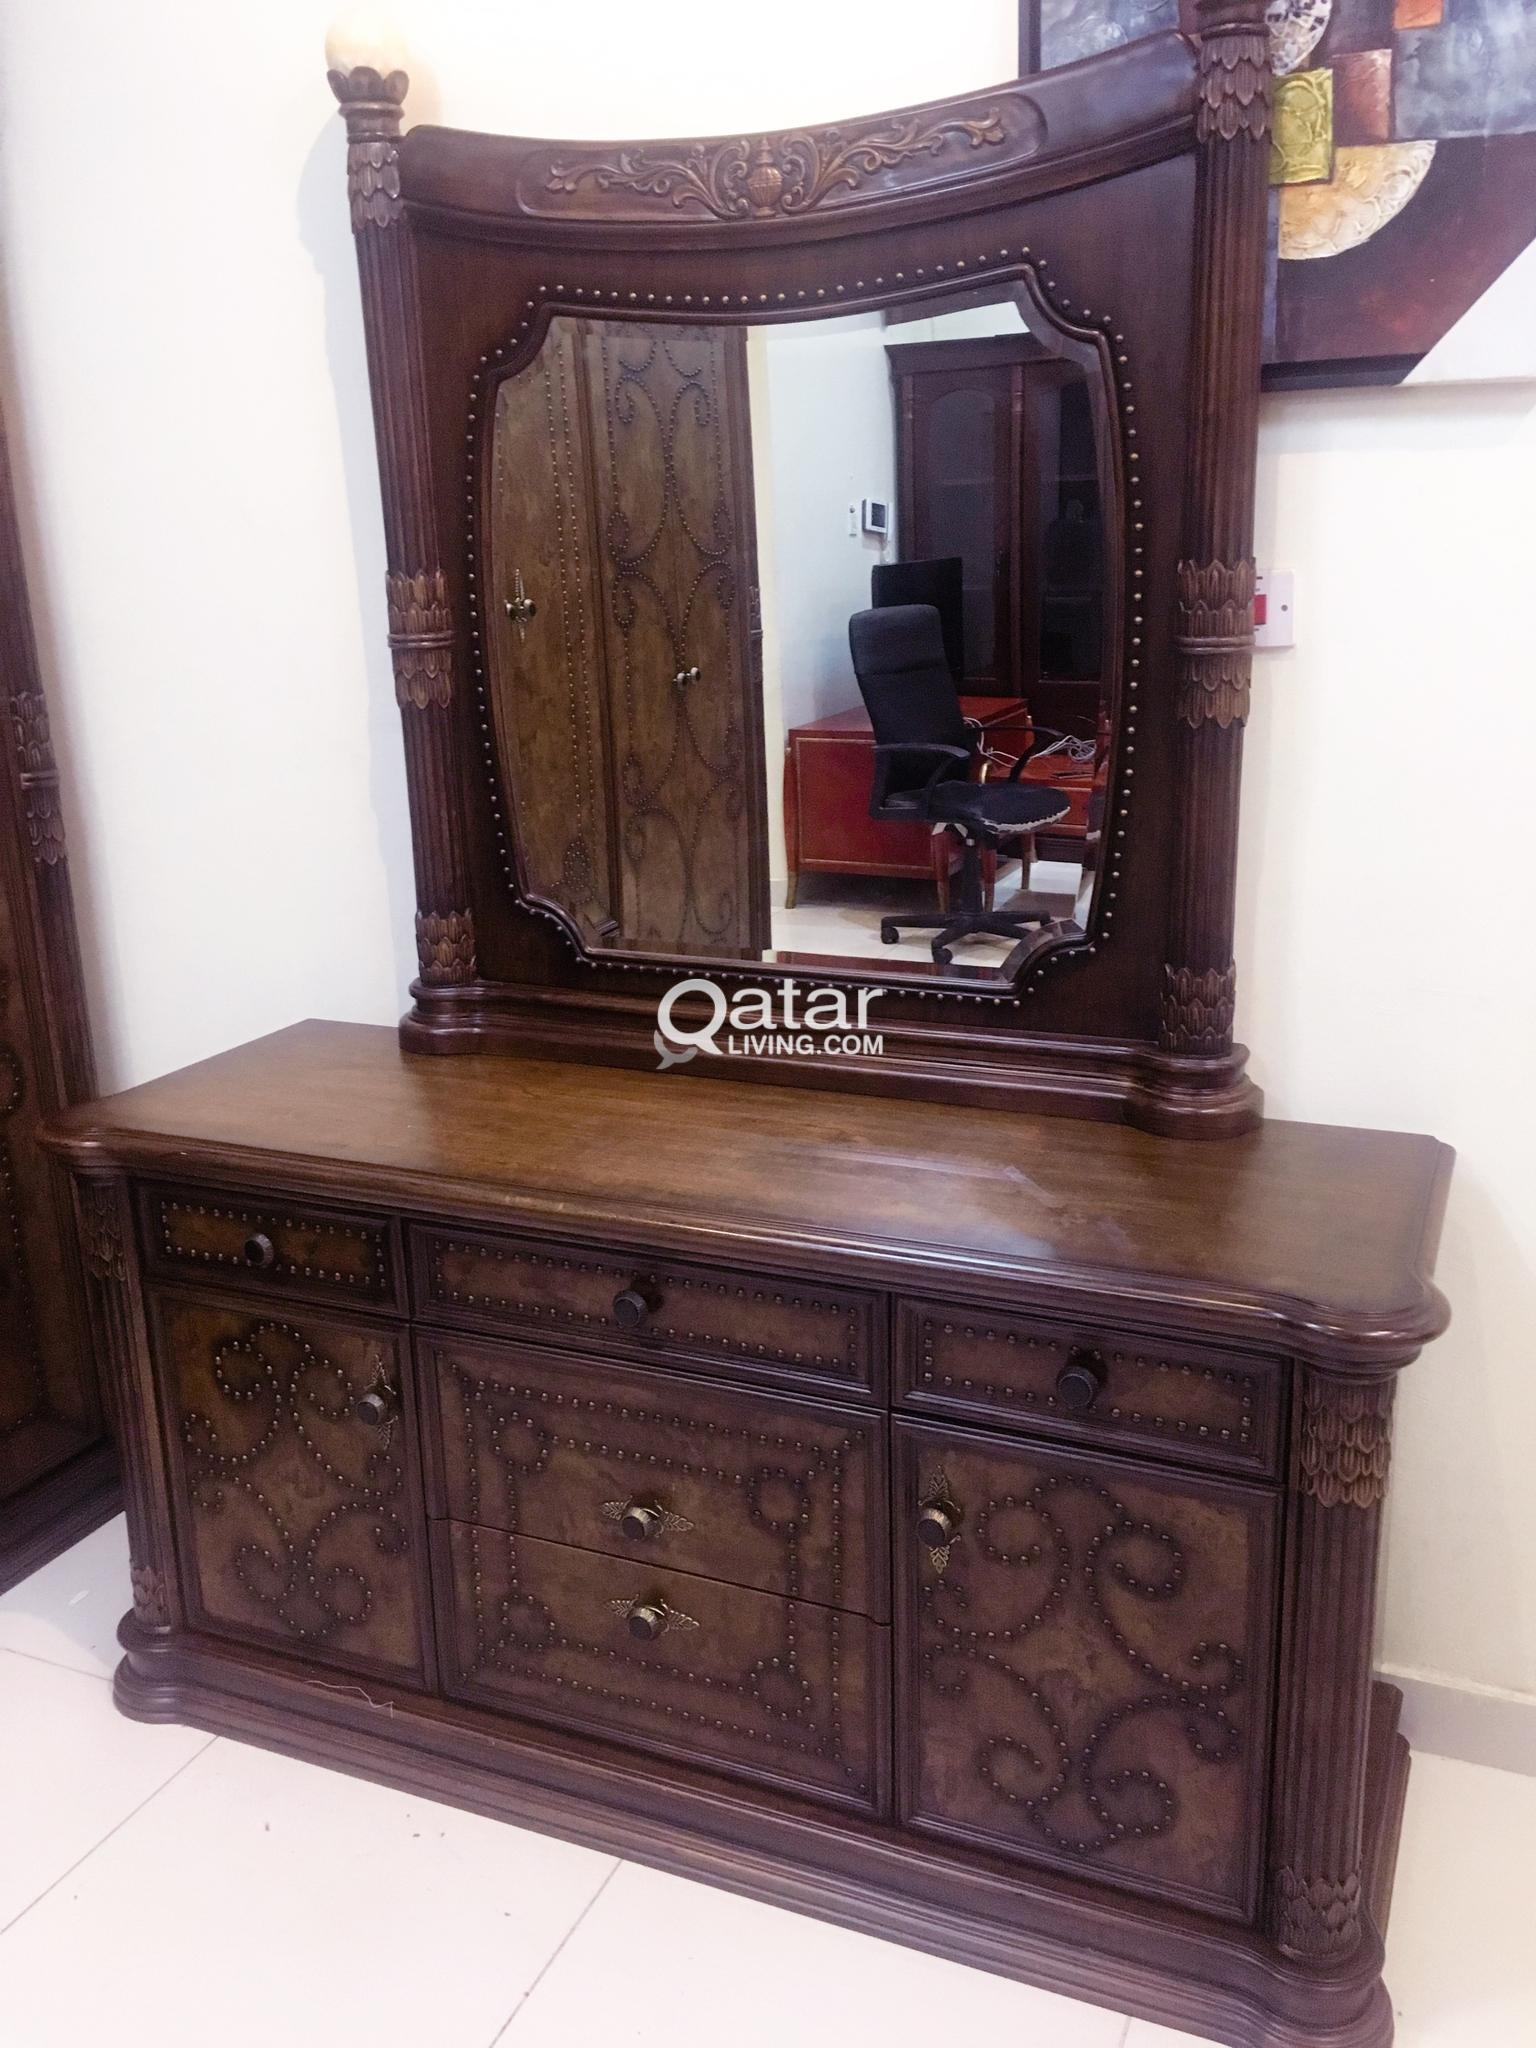 For Sell Some Used Villa Furniture Items